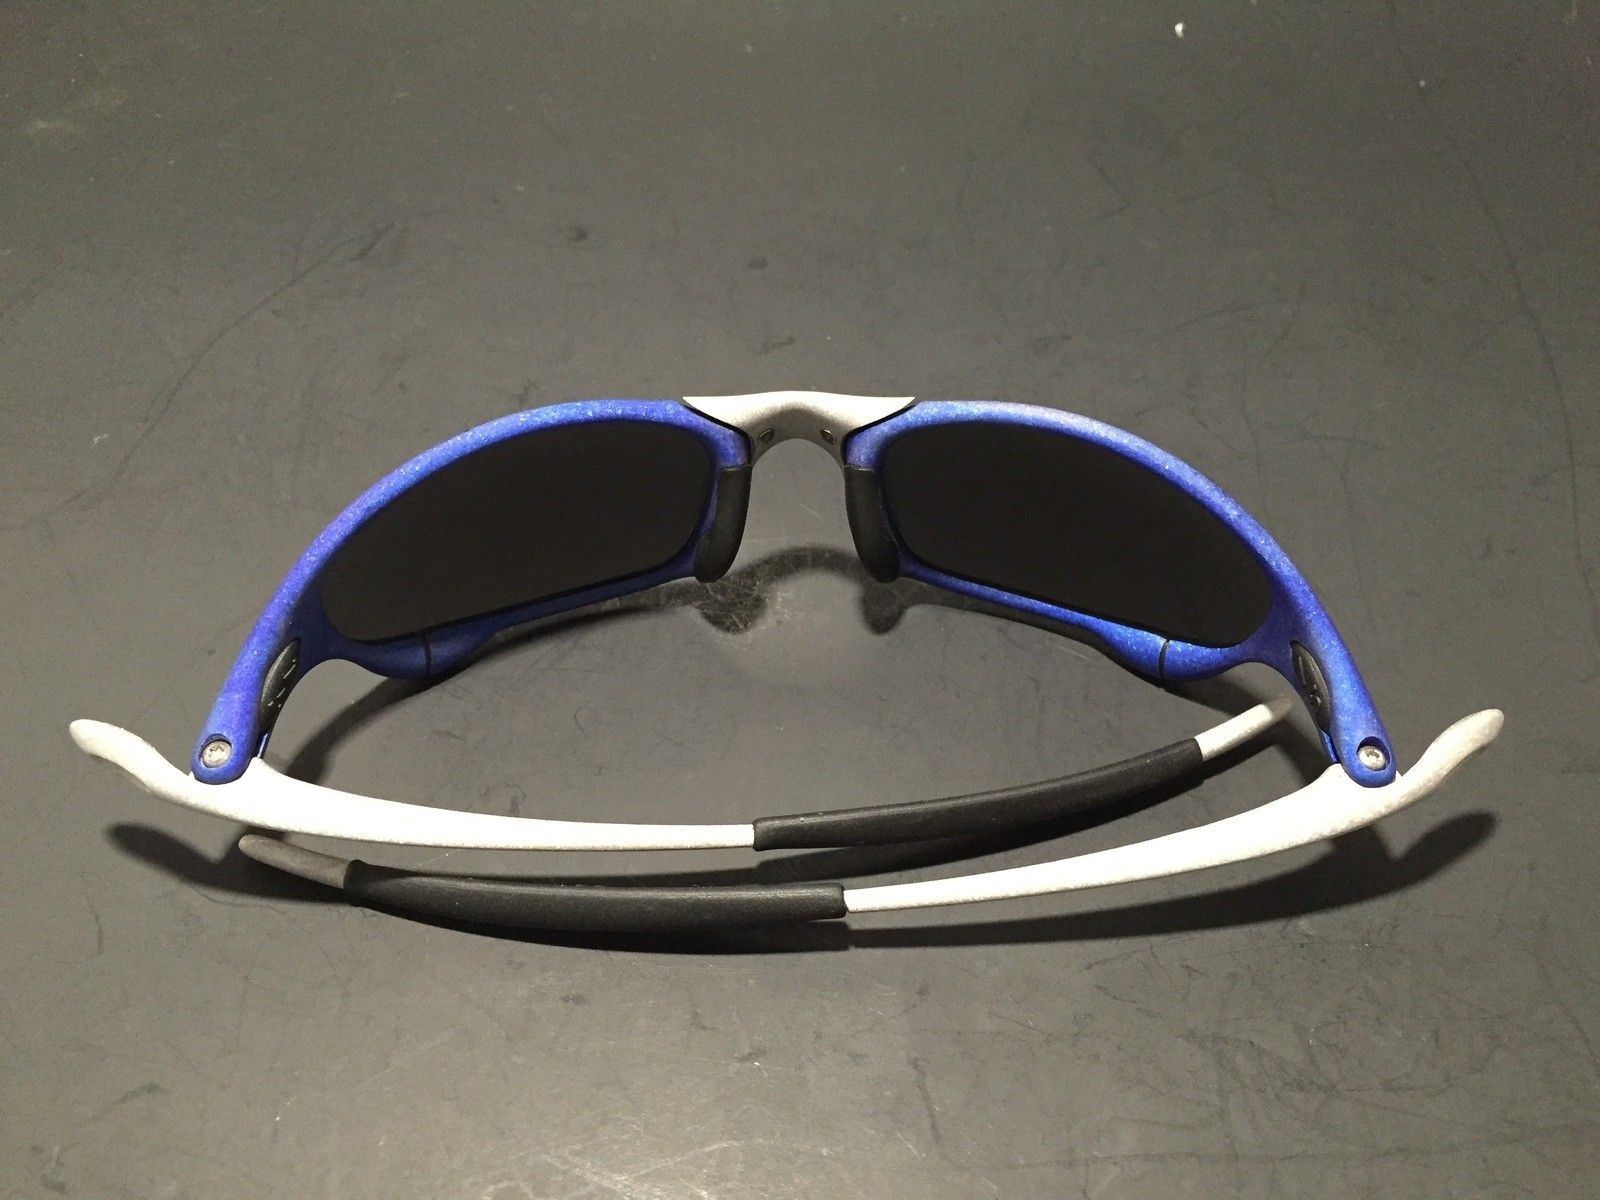 Anodized Juliet Dallas Cowboys colors Blue/Silver w/ OEM Ice Lenses - IMG_1781.JPG